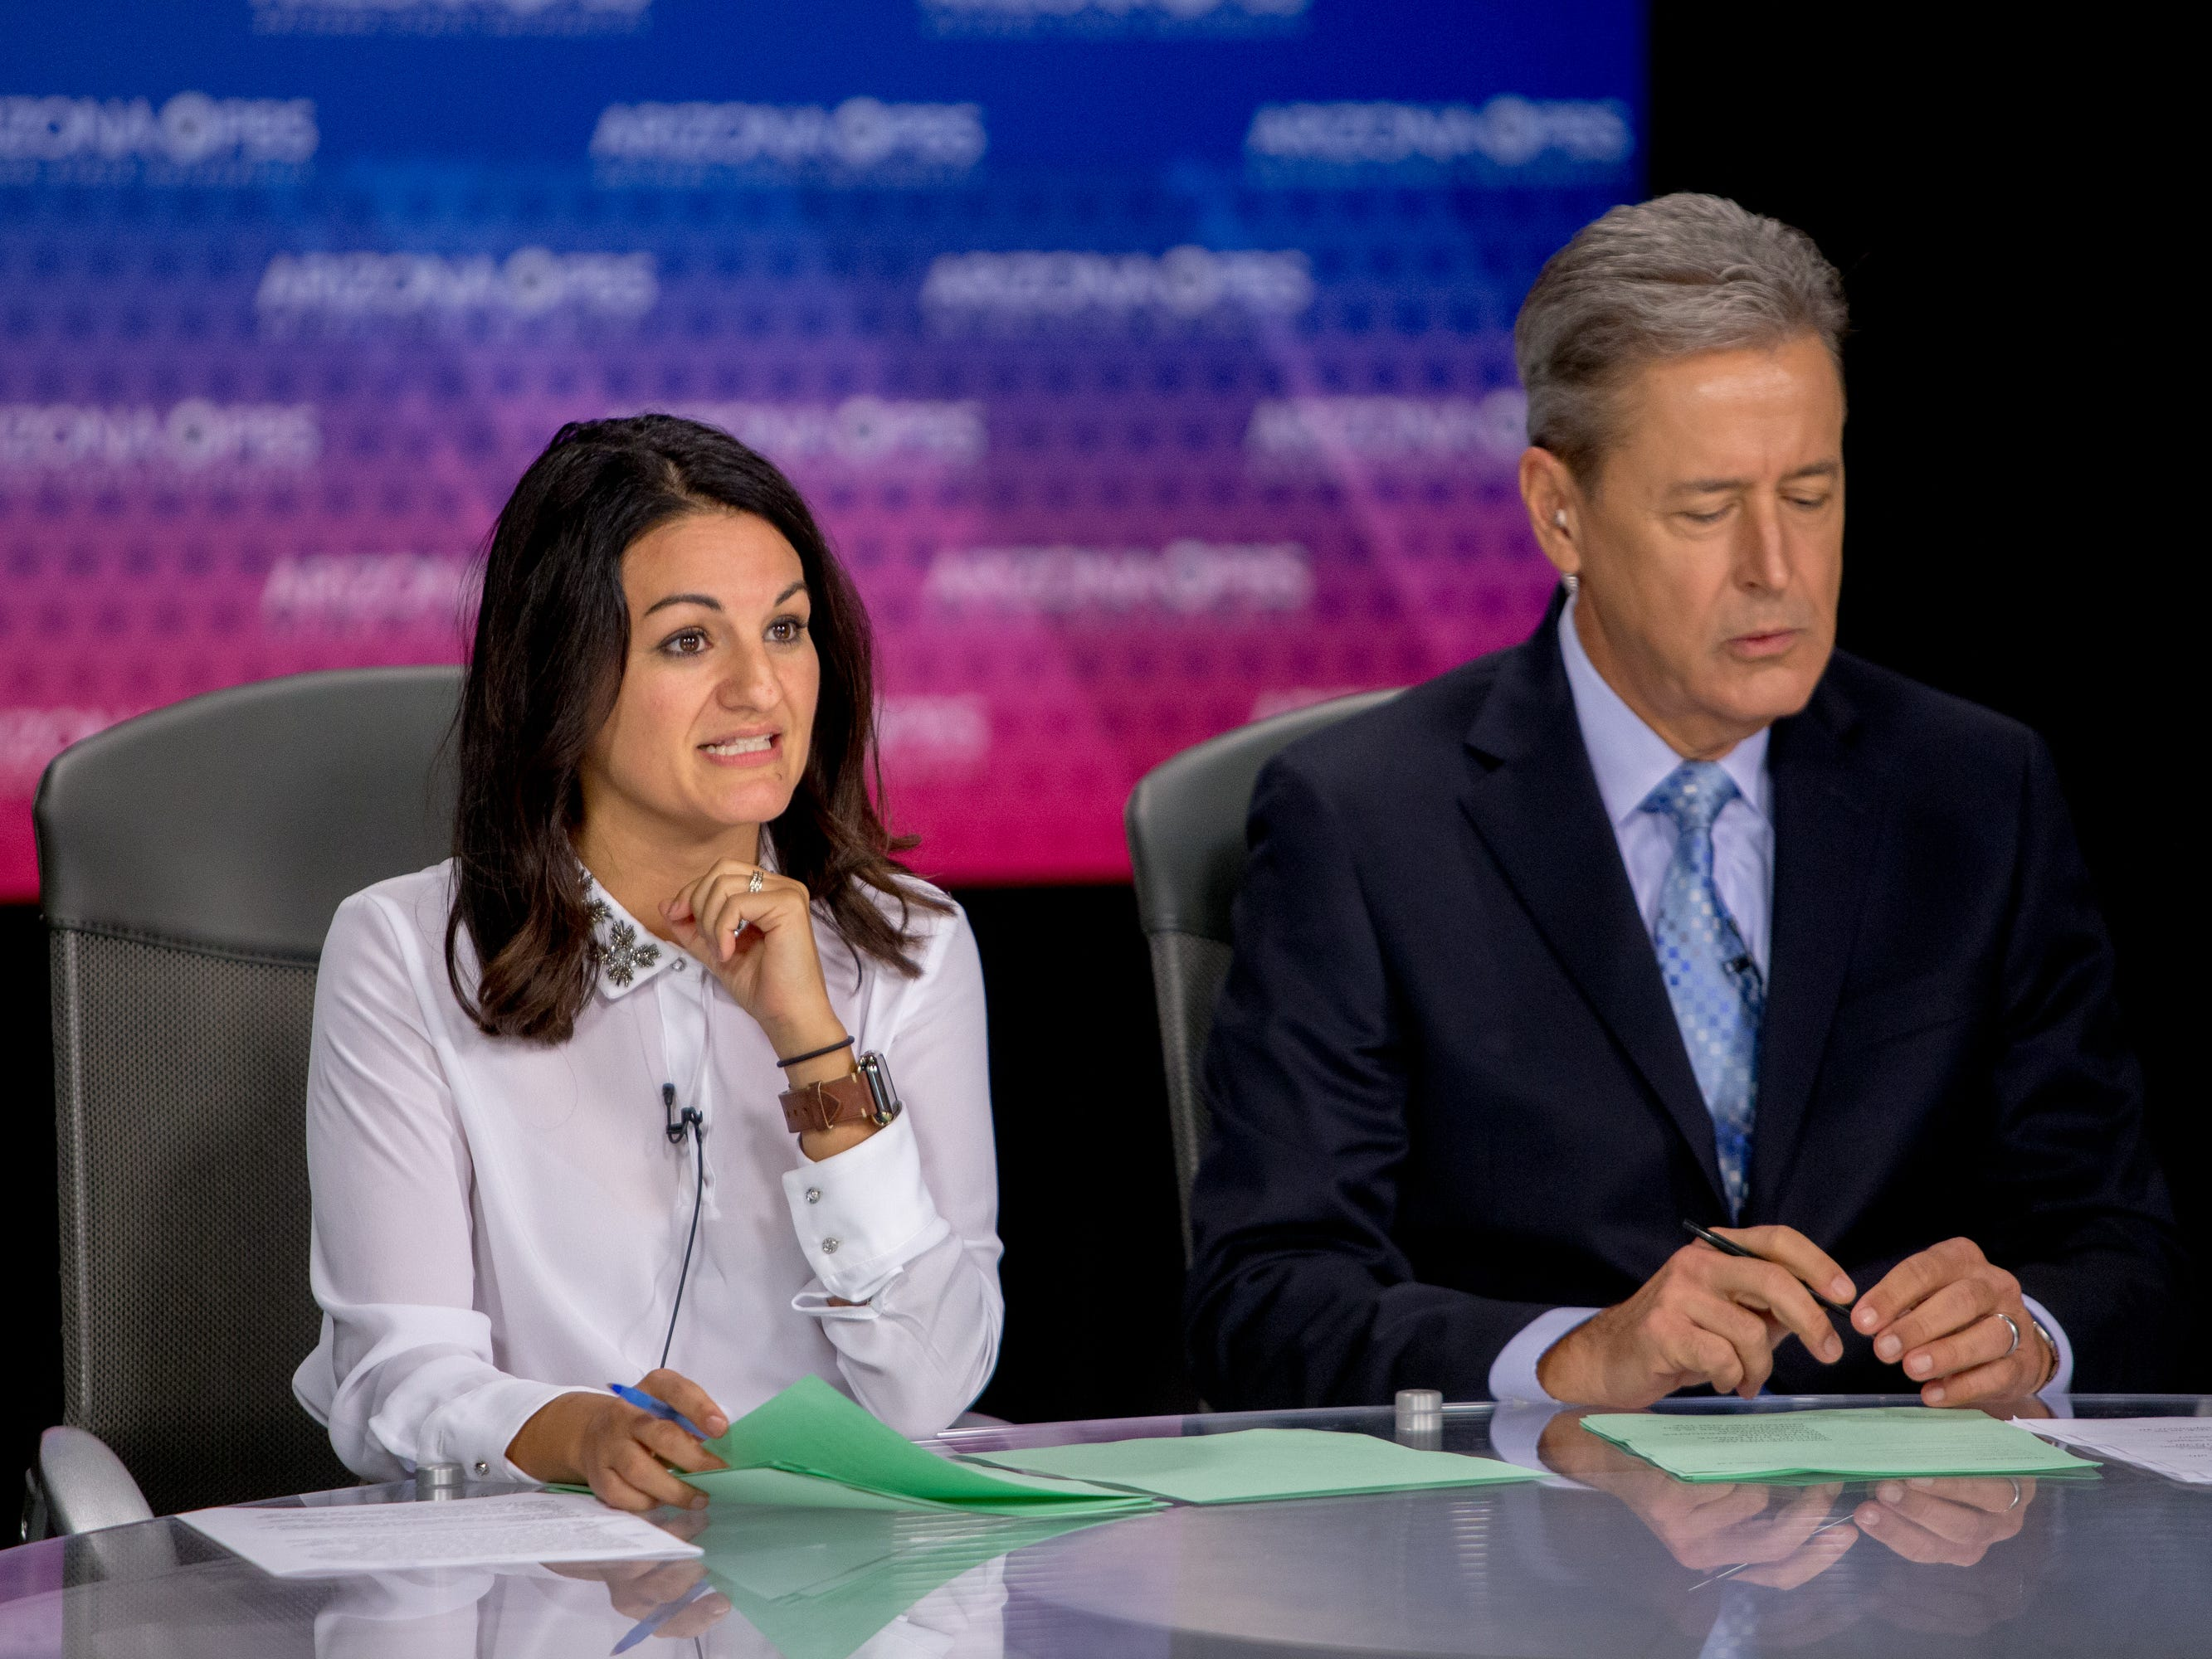 Moderators Yvonne Wingett Sanchez and Ted Simons go through the program opening on July 31, 2018, during a debate among Democrats vying for Arizona governor at Arizona State University's Walter Cronkite School of Journalism in Phoenix, Arizona.